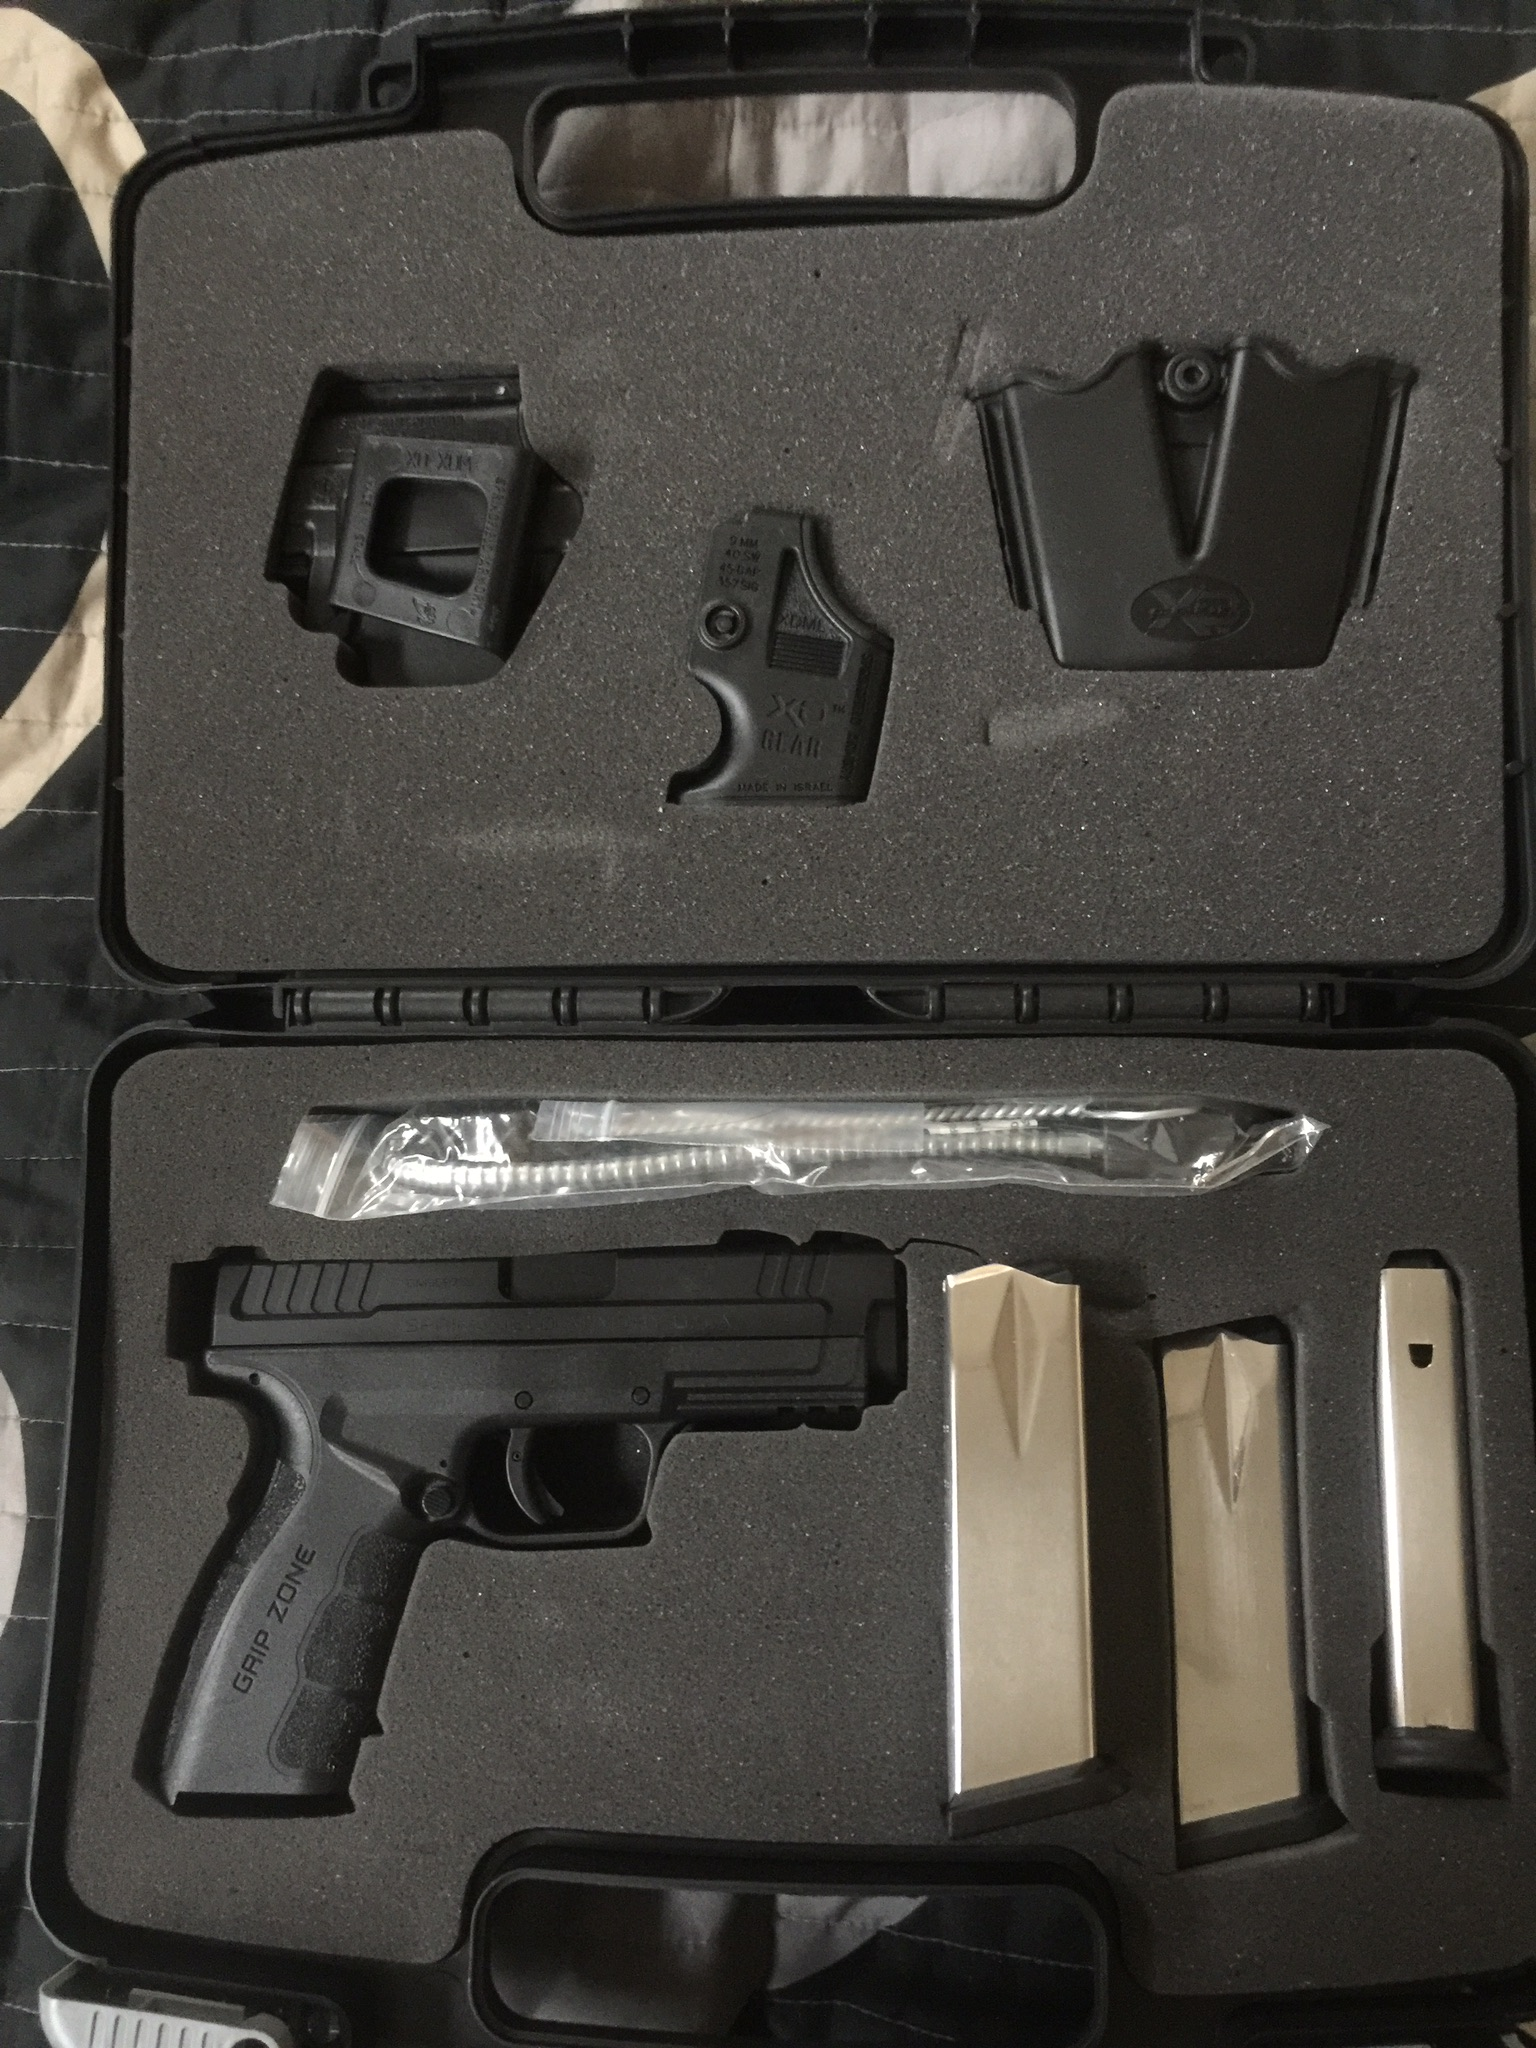 PRP Extended Grip Safety | Springfield XD Forum